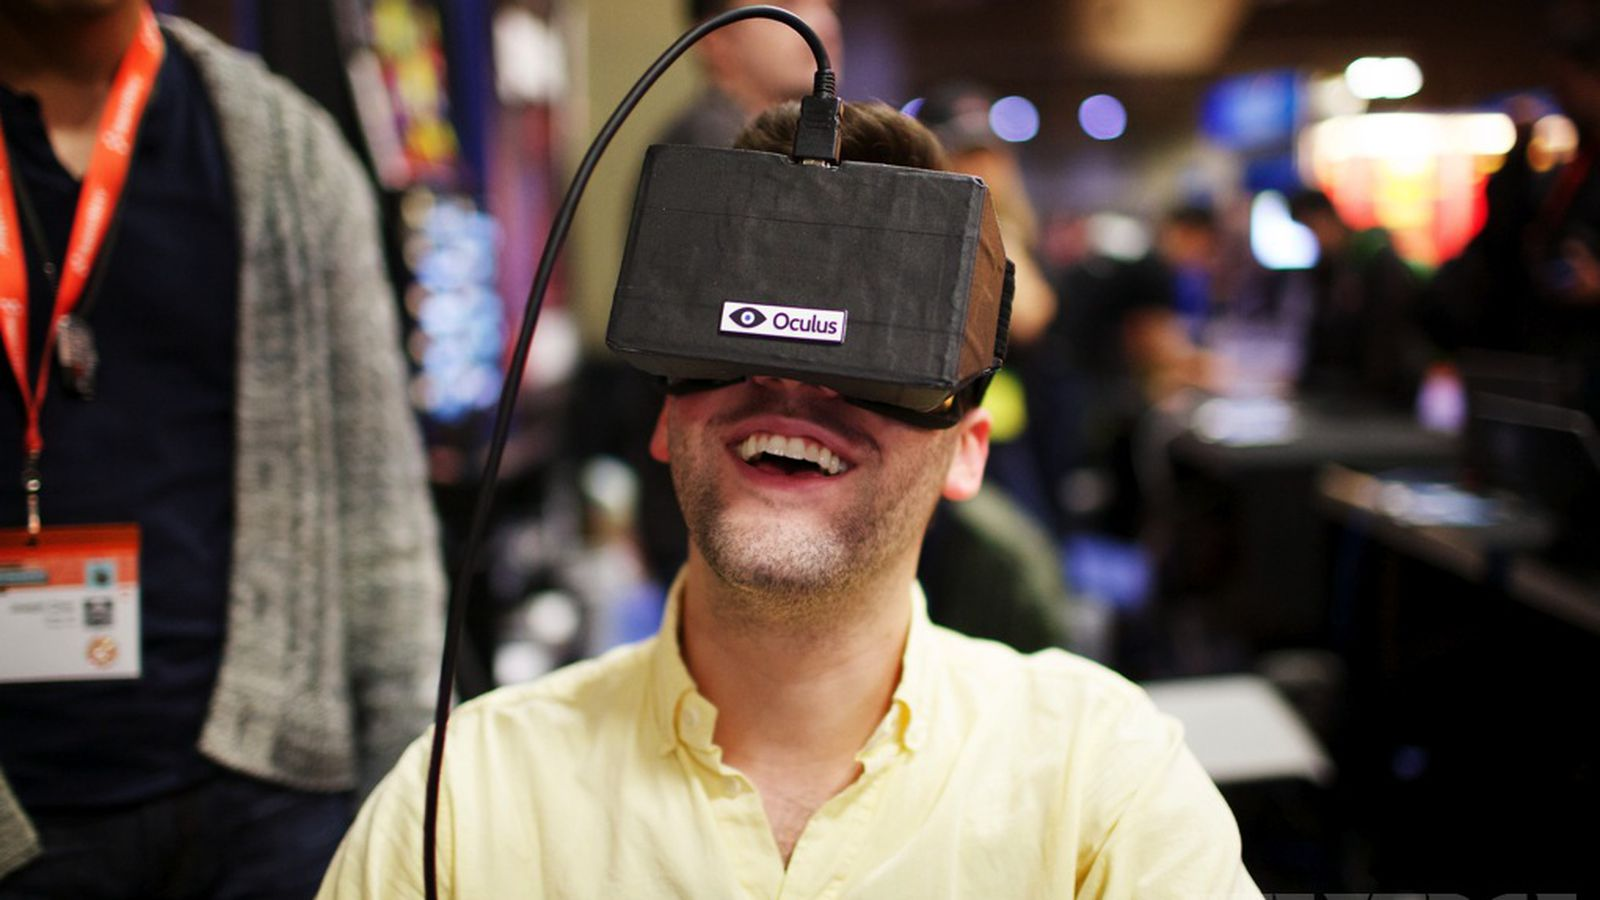 Oculus CEO thinks VR headsets could eventually be free with subsidies